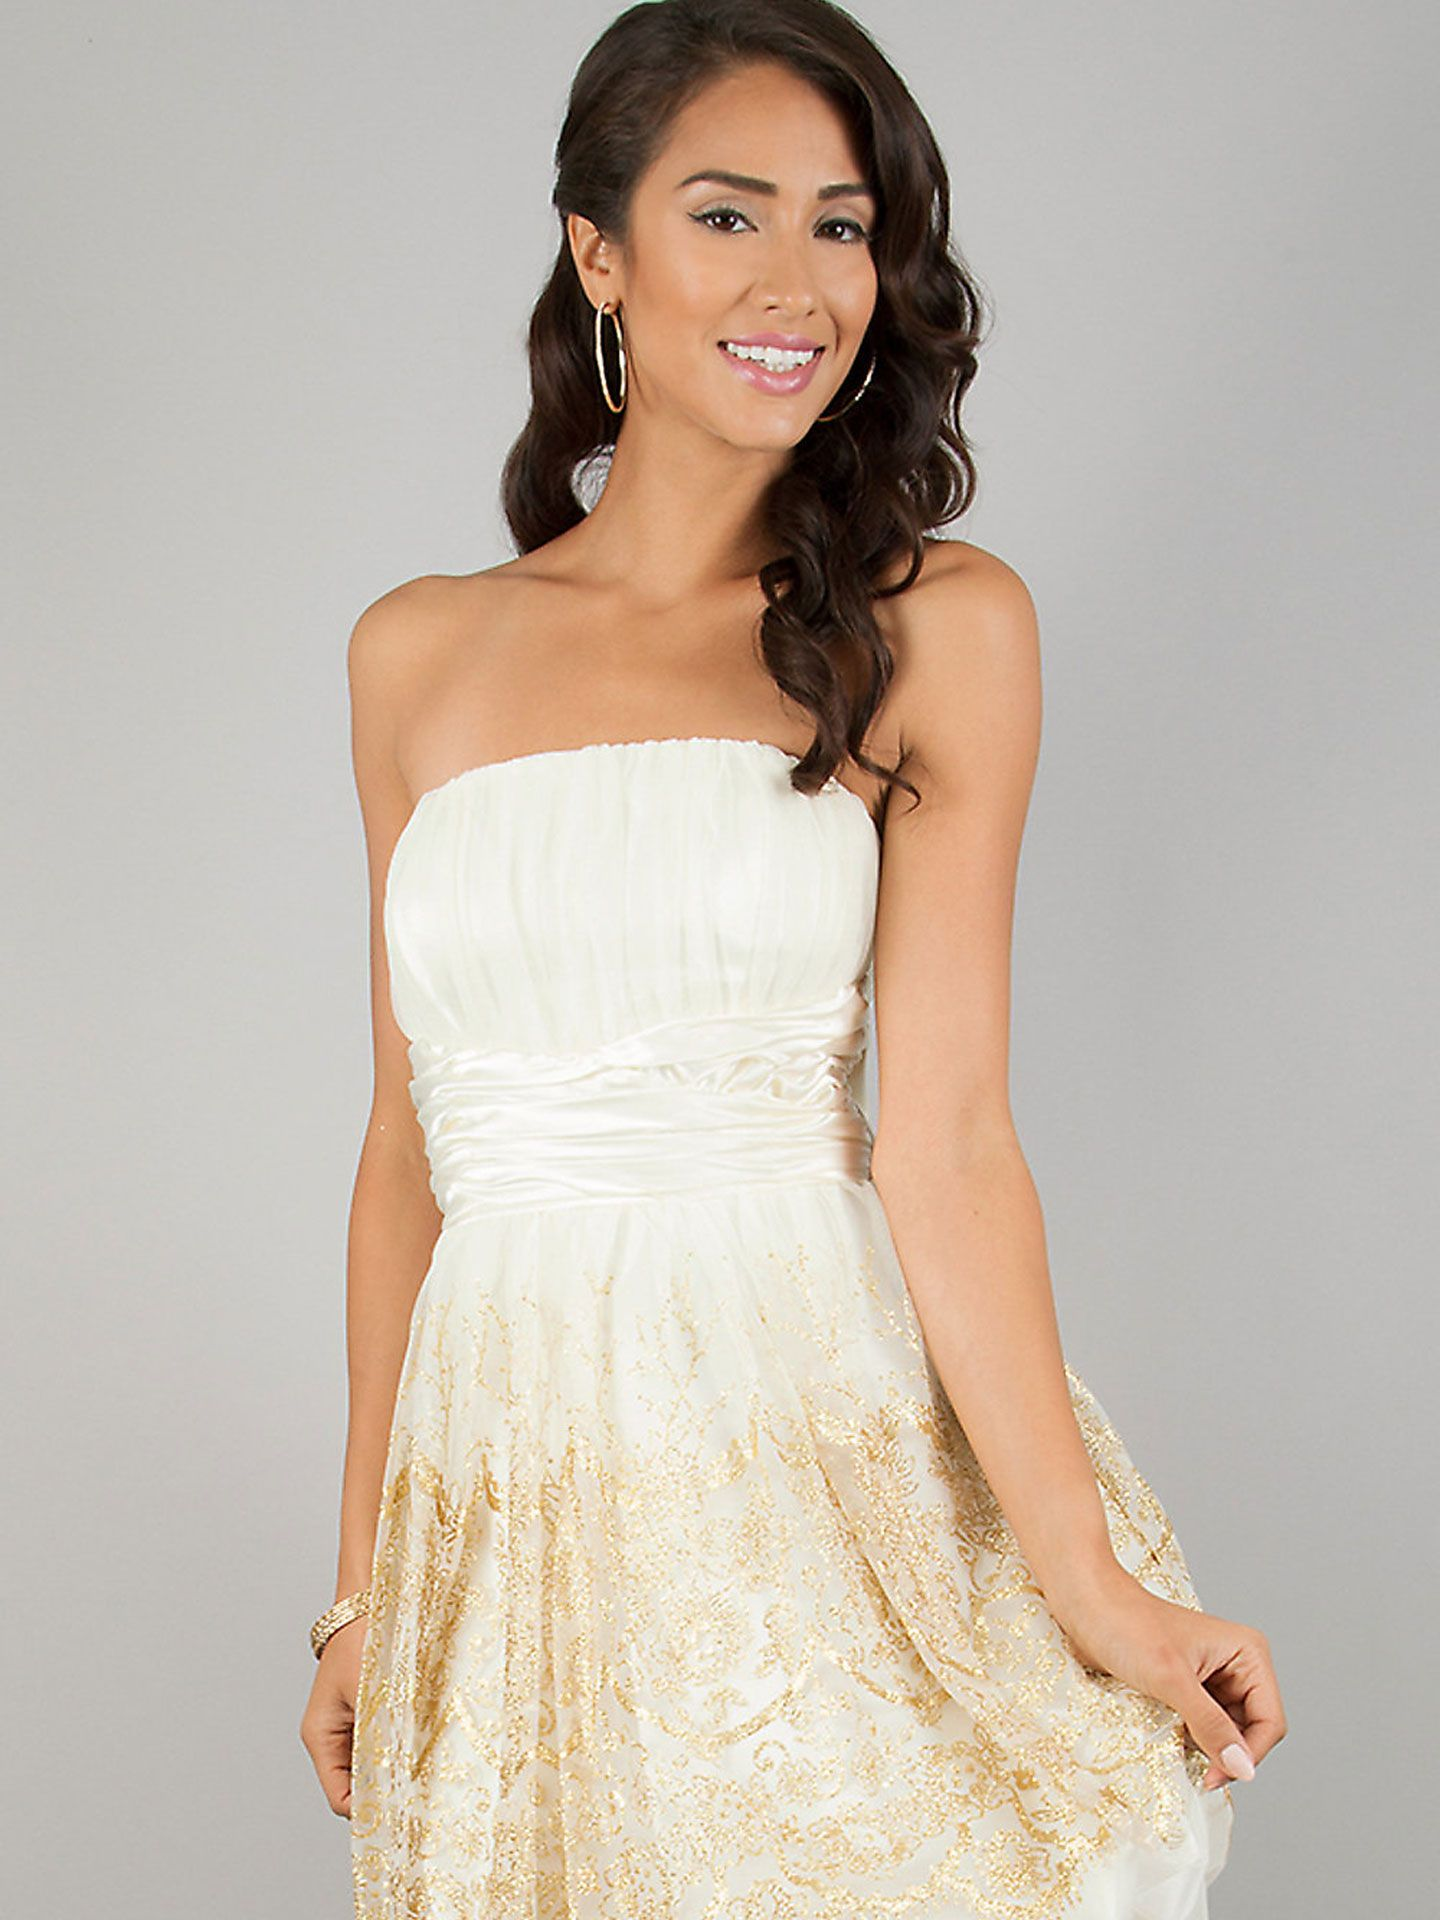 17 Adorable Prom Dresses Under $50 | Ivory dresses, Gold glitter and ...